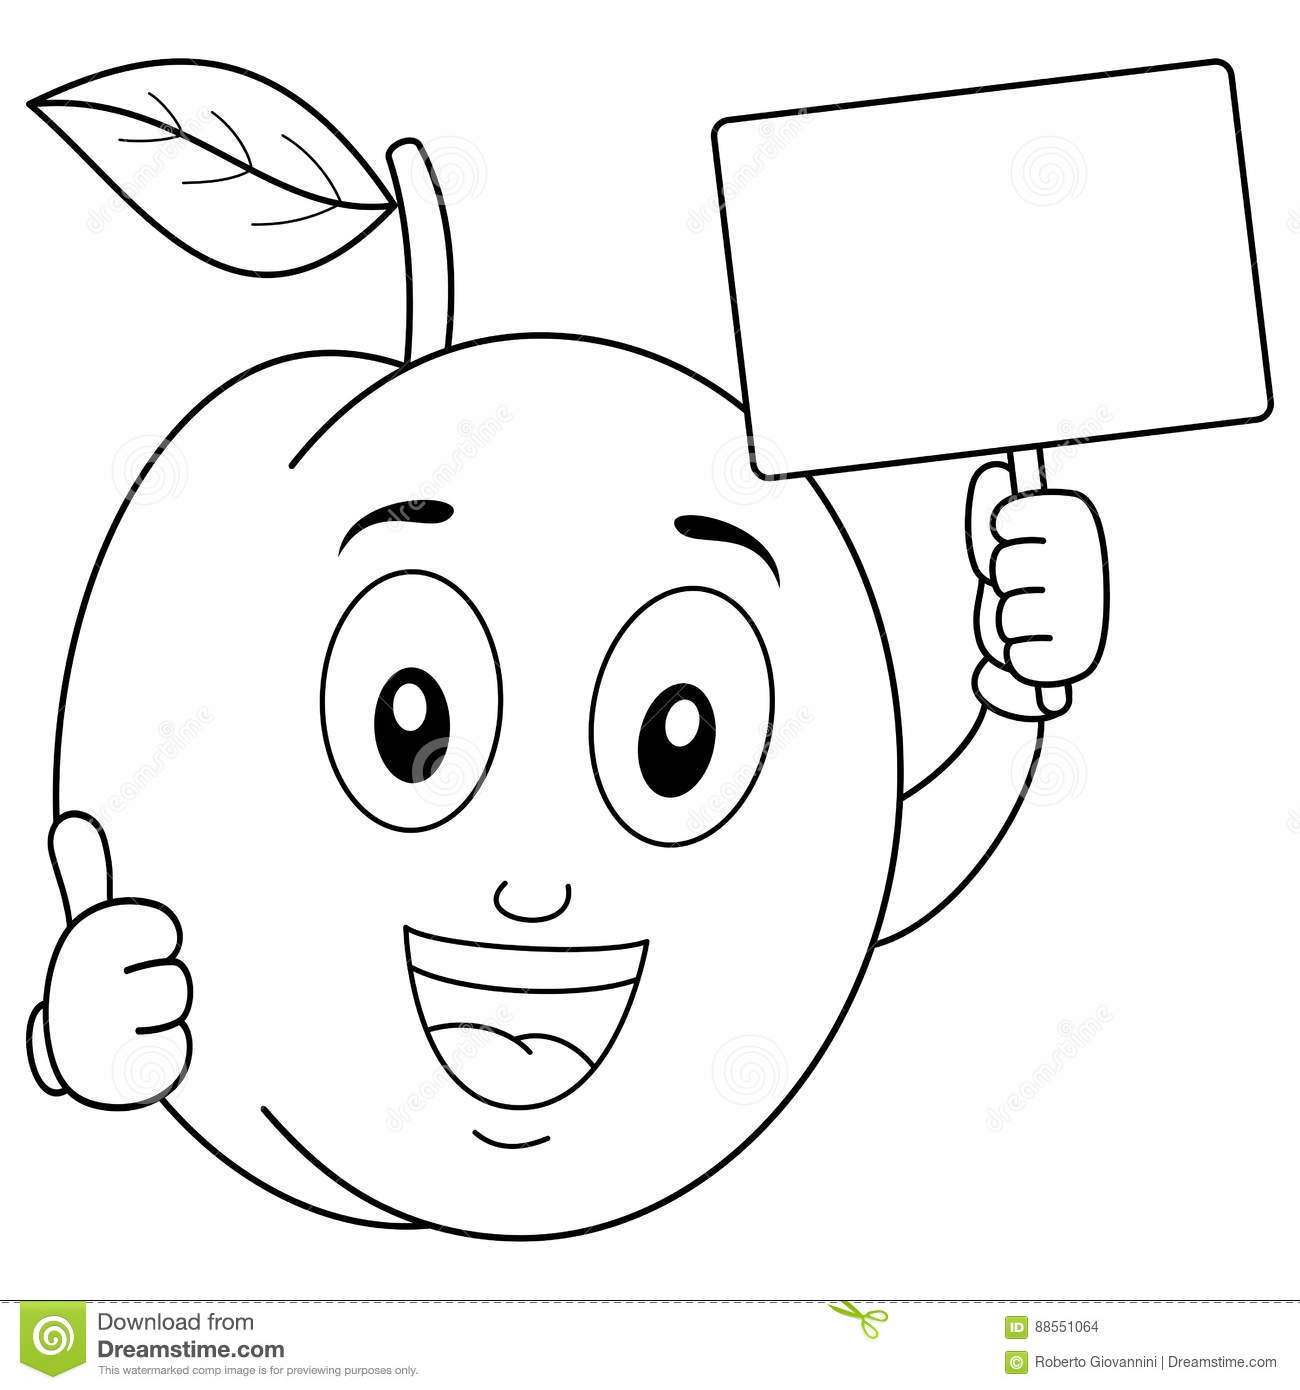 Blank cartoon pictures for colouring